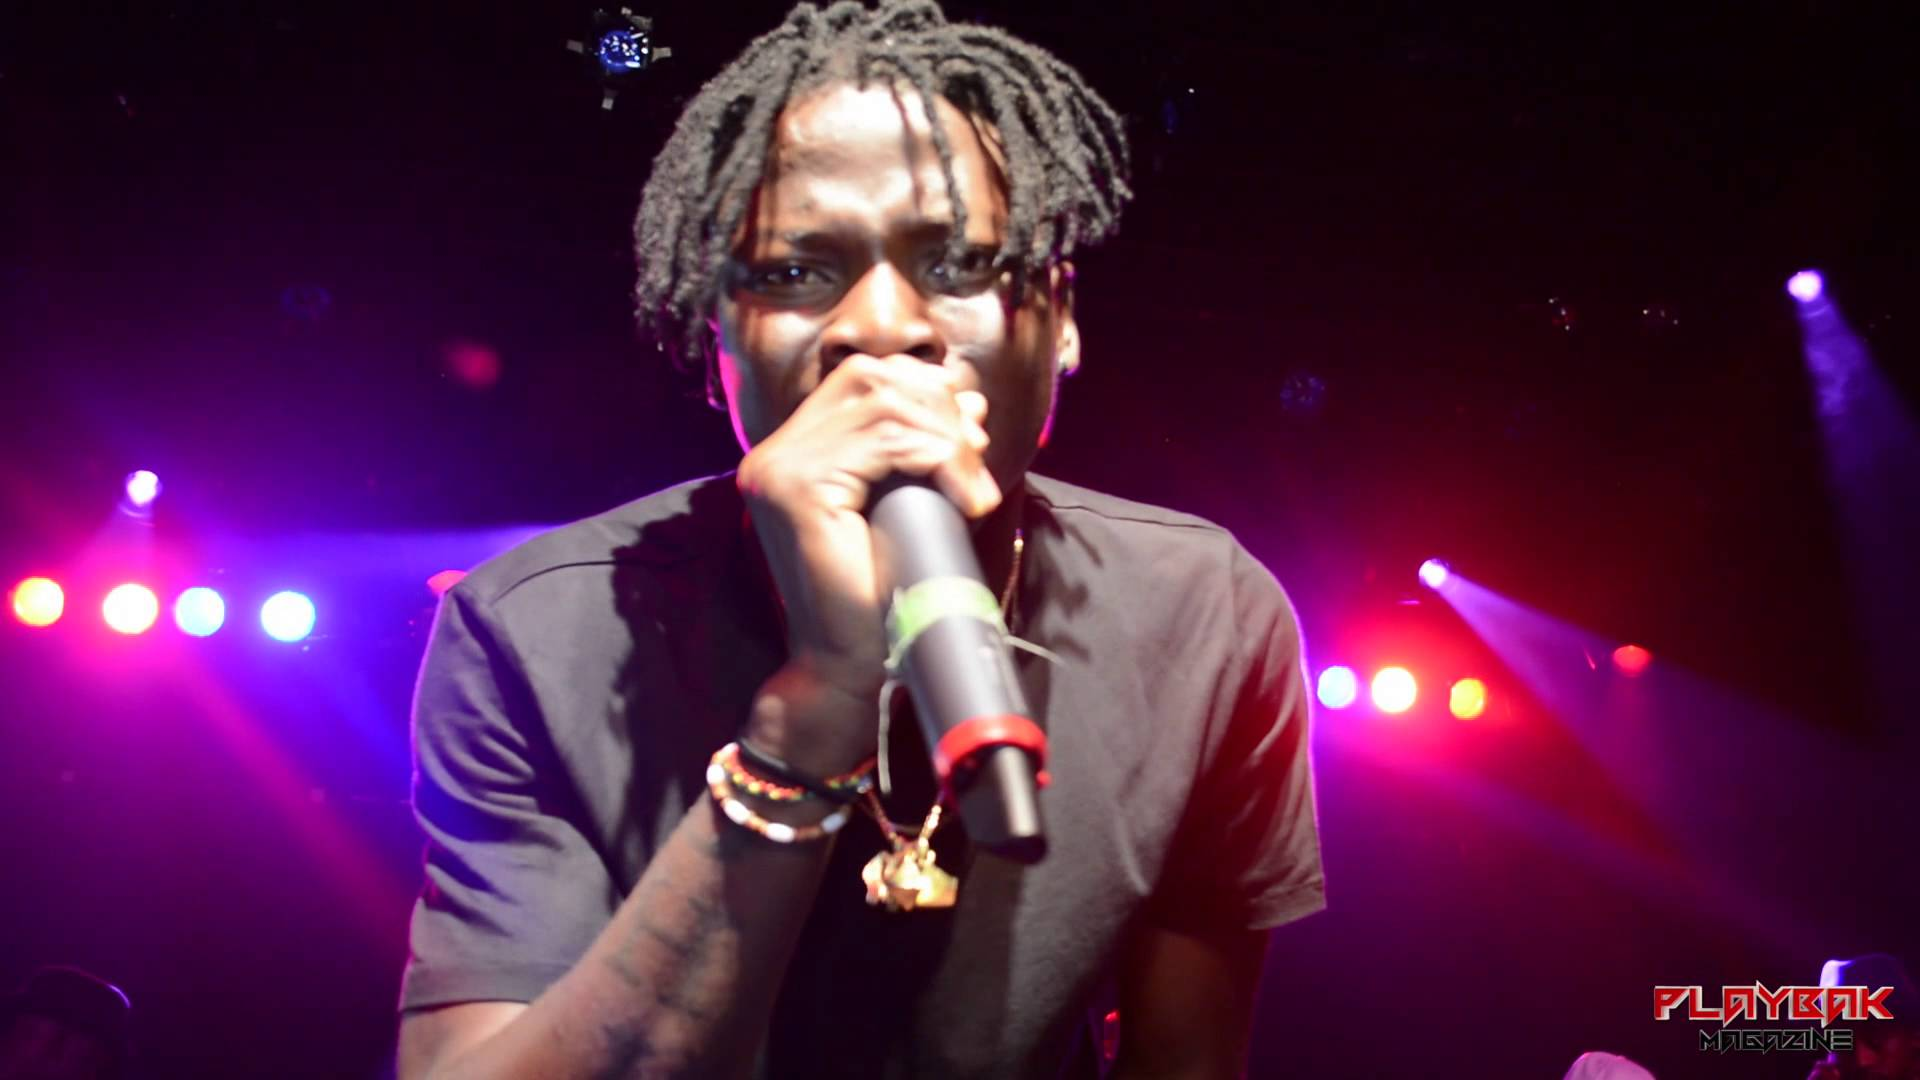 2018 VGMA: Stonebwoy to perform at Saturday's VGMA Awards after Zylofon reduced their charges